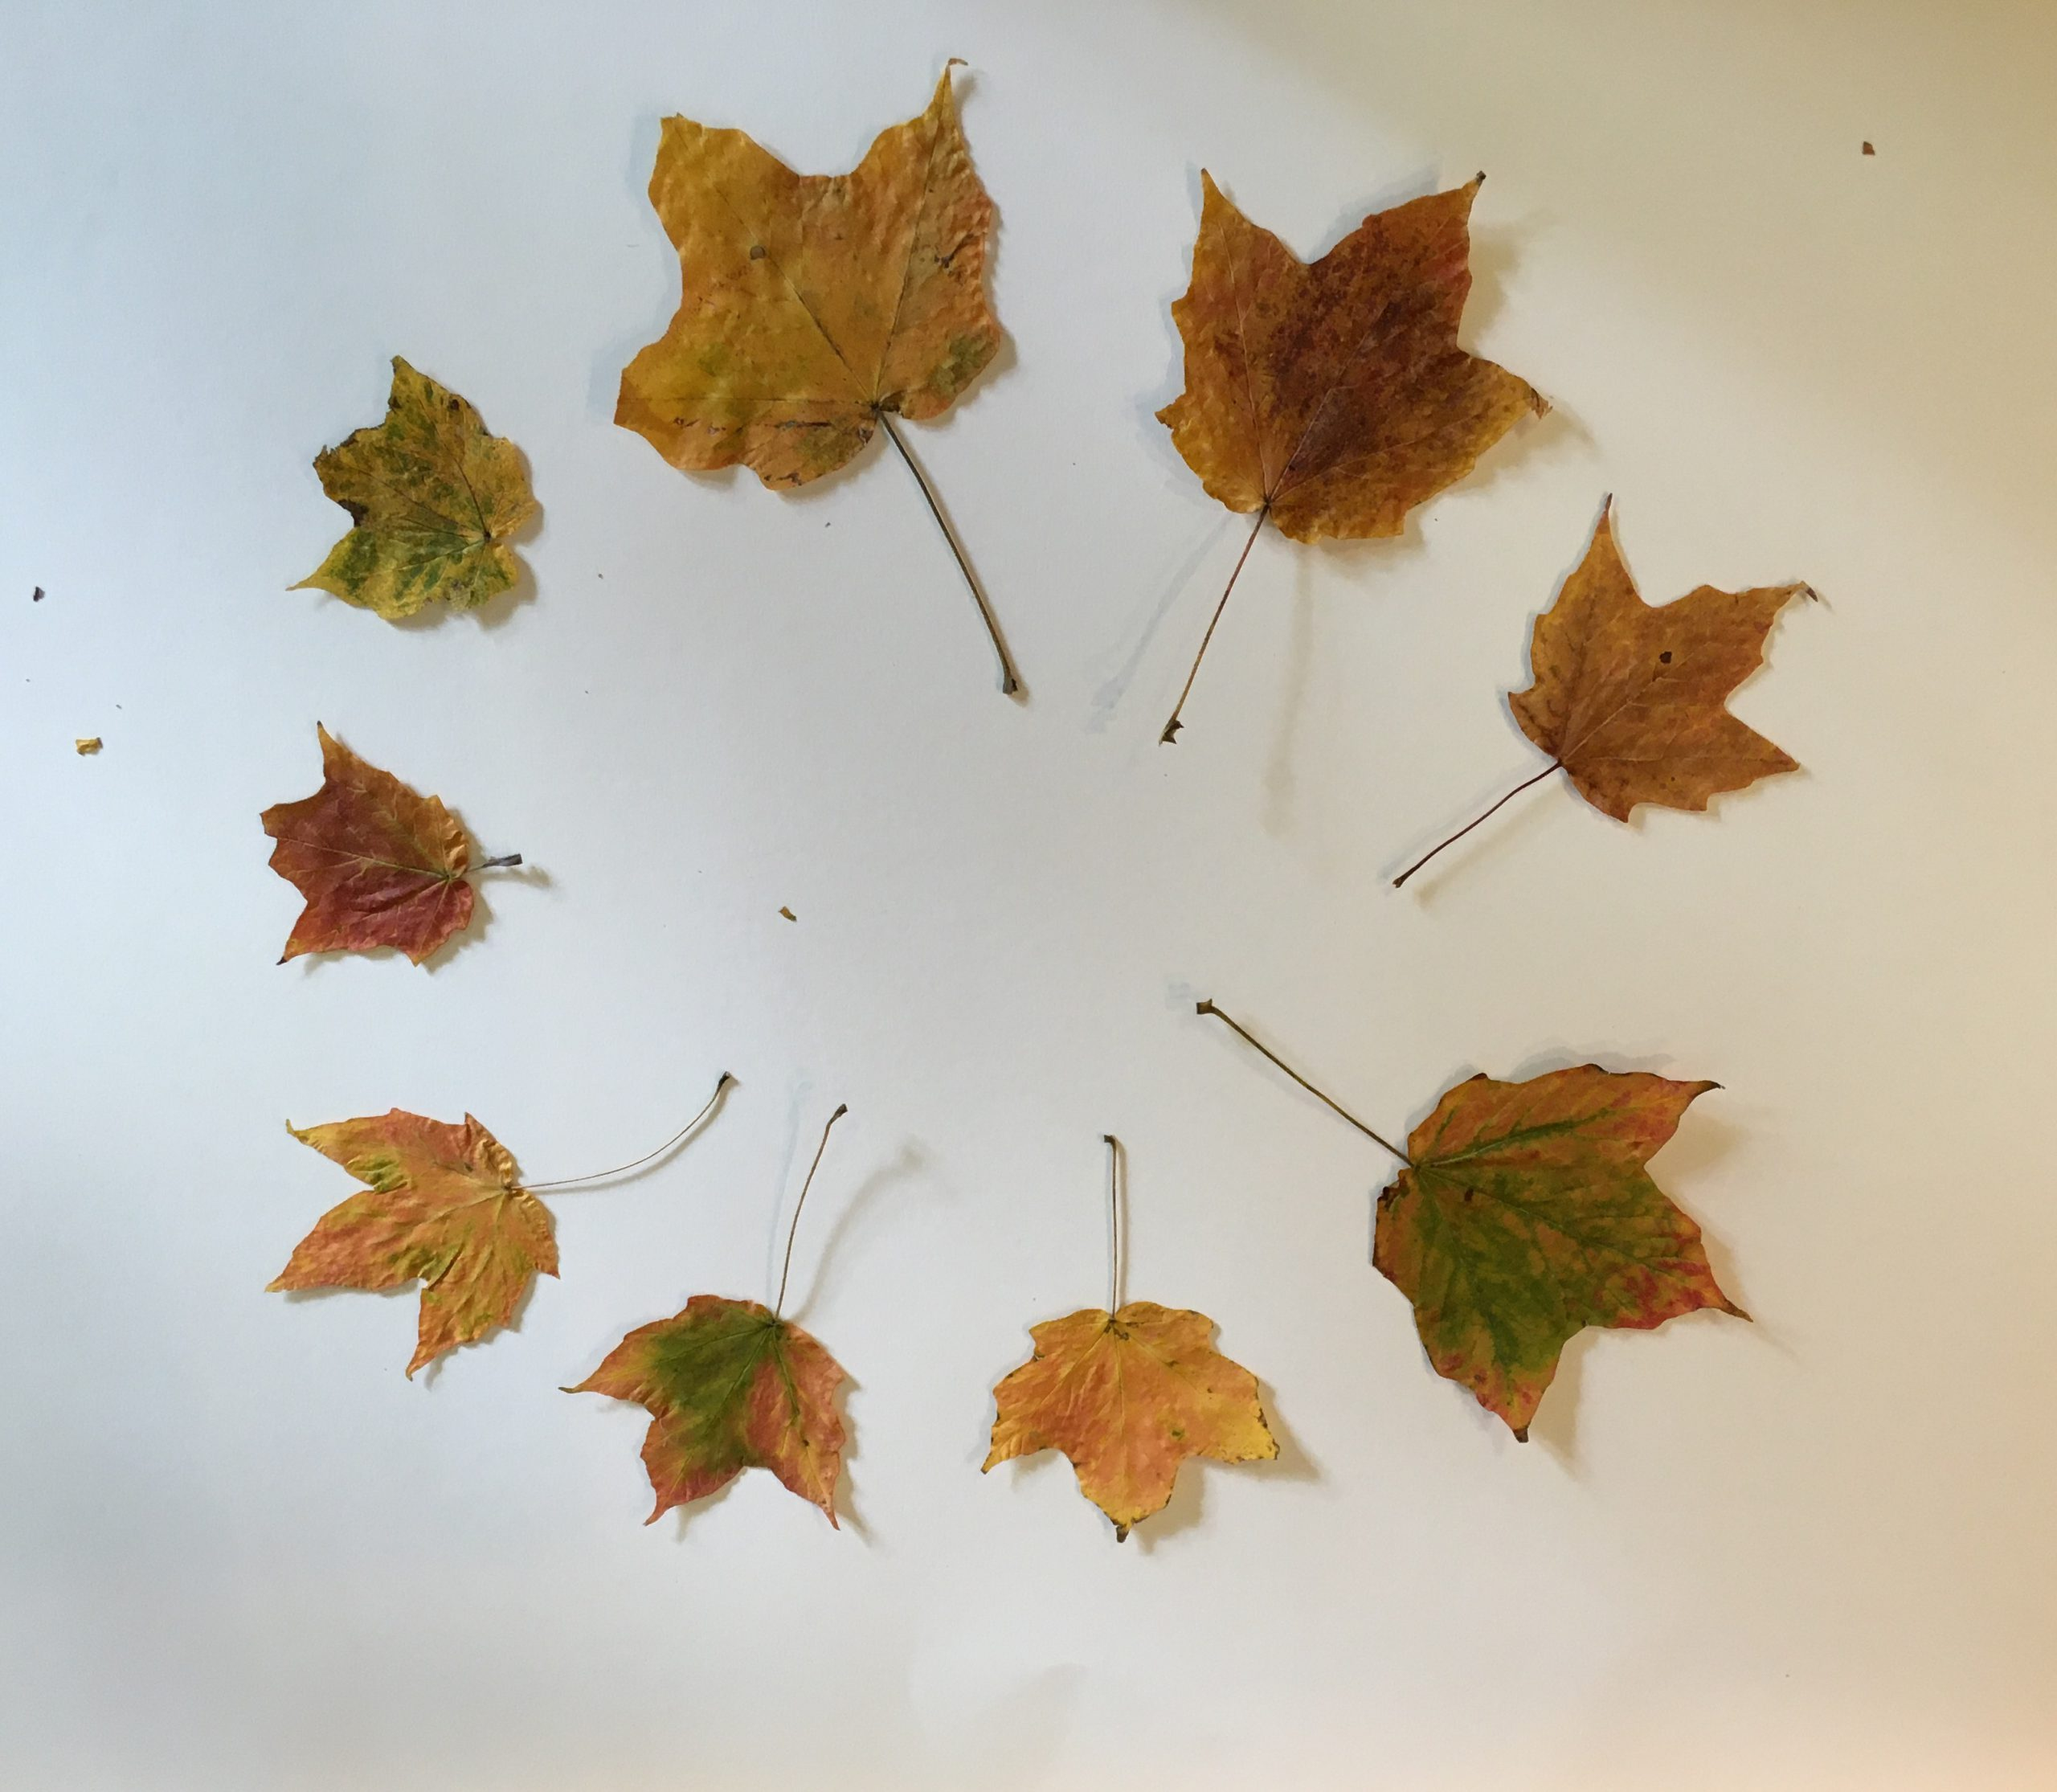 Nine yellow maple leaves arranged in a circle with stems toward the center